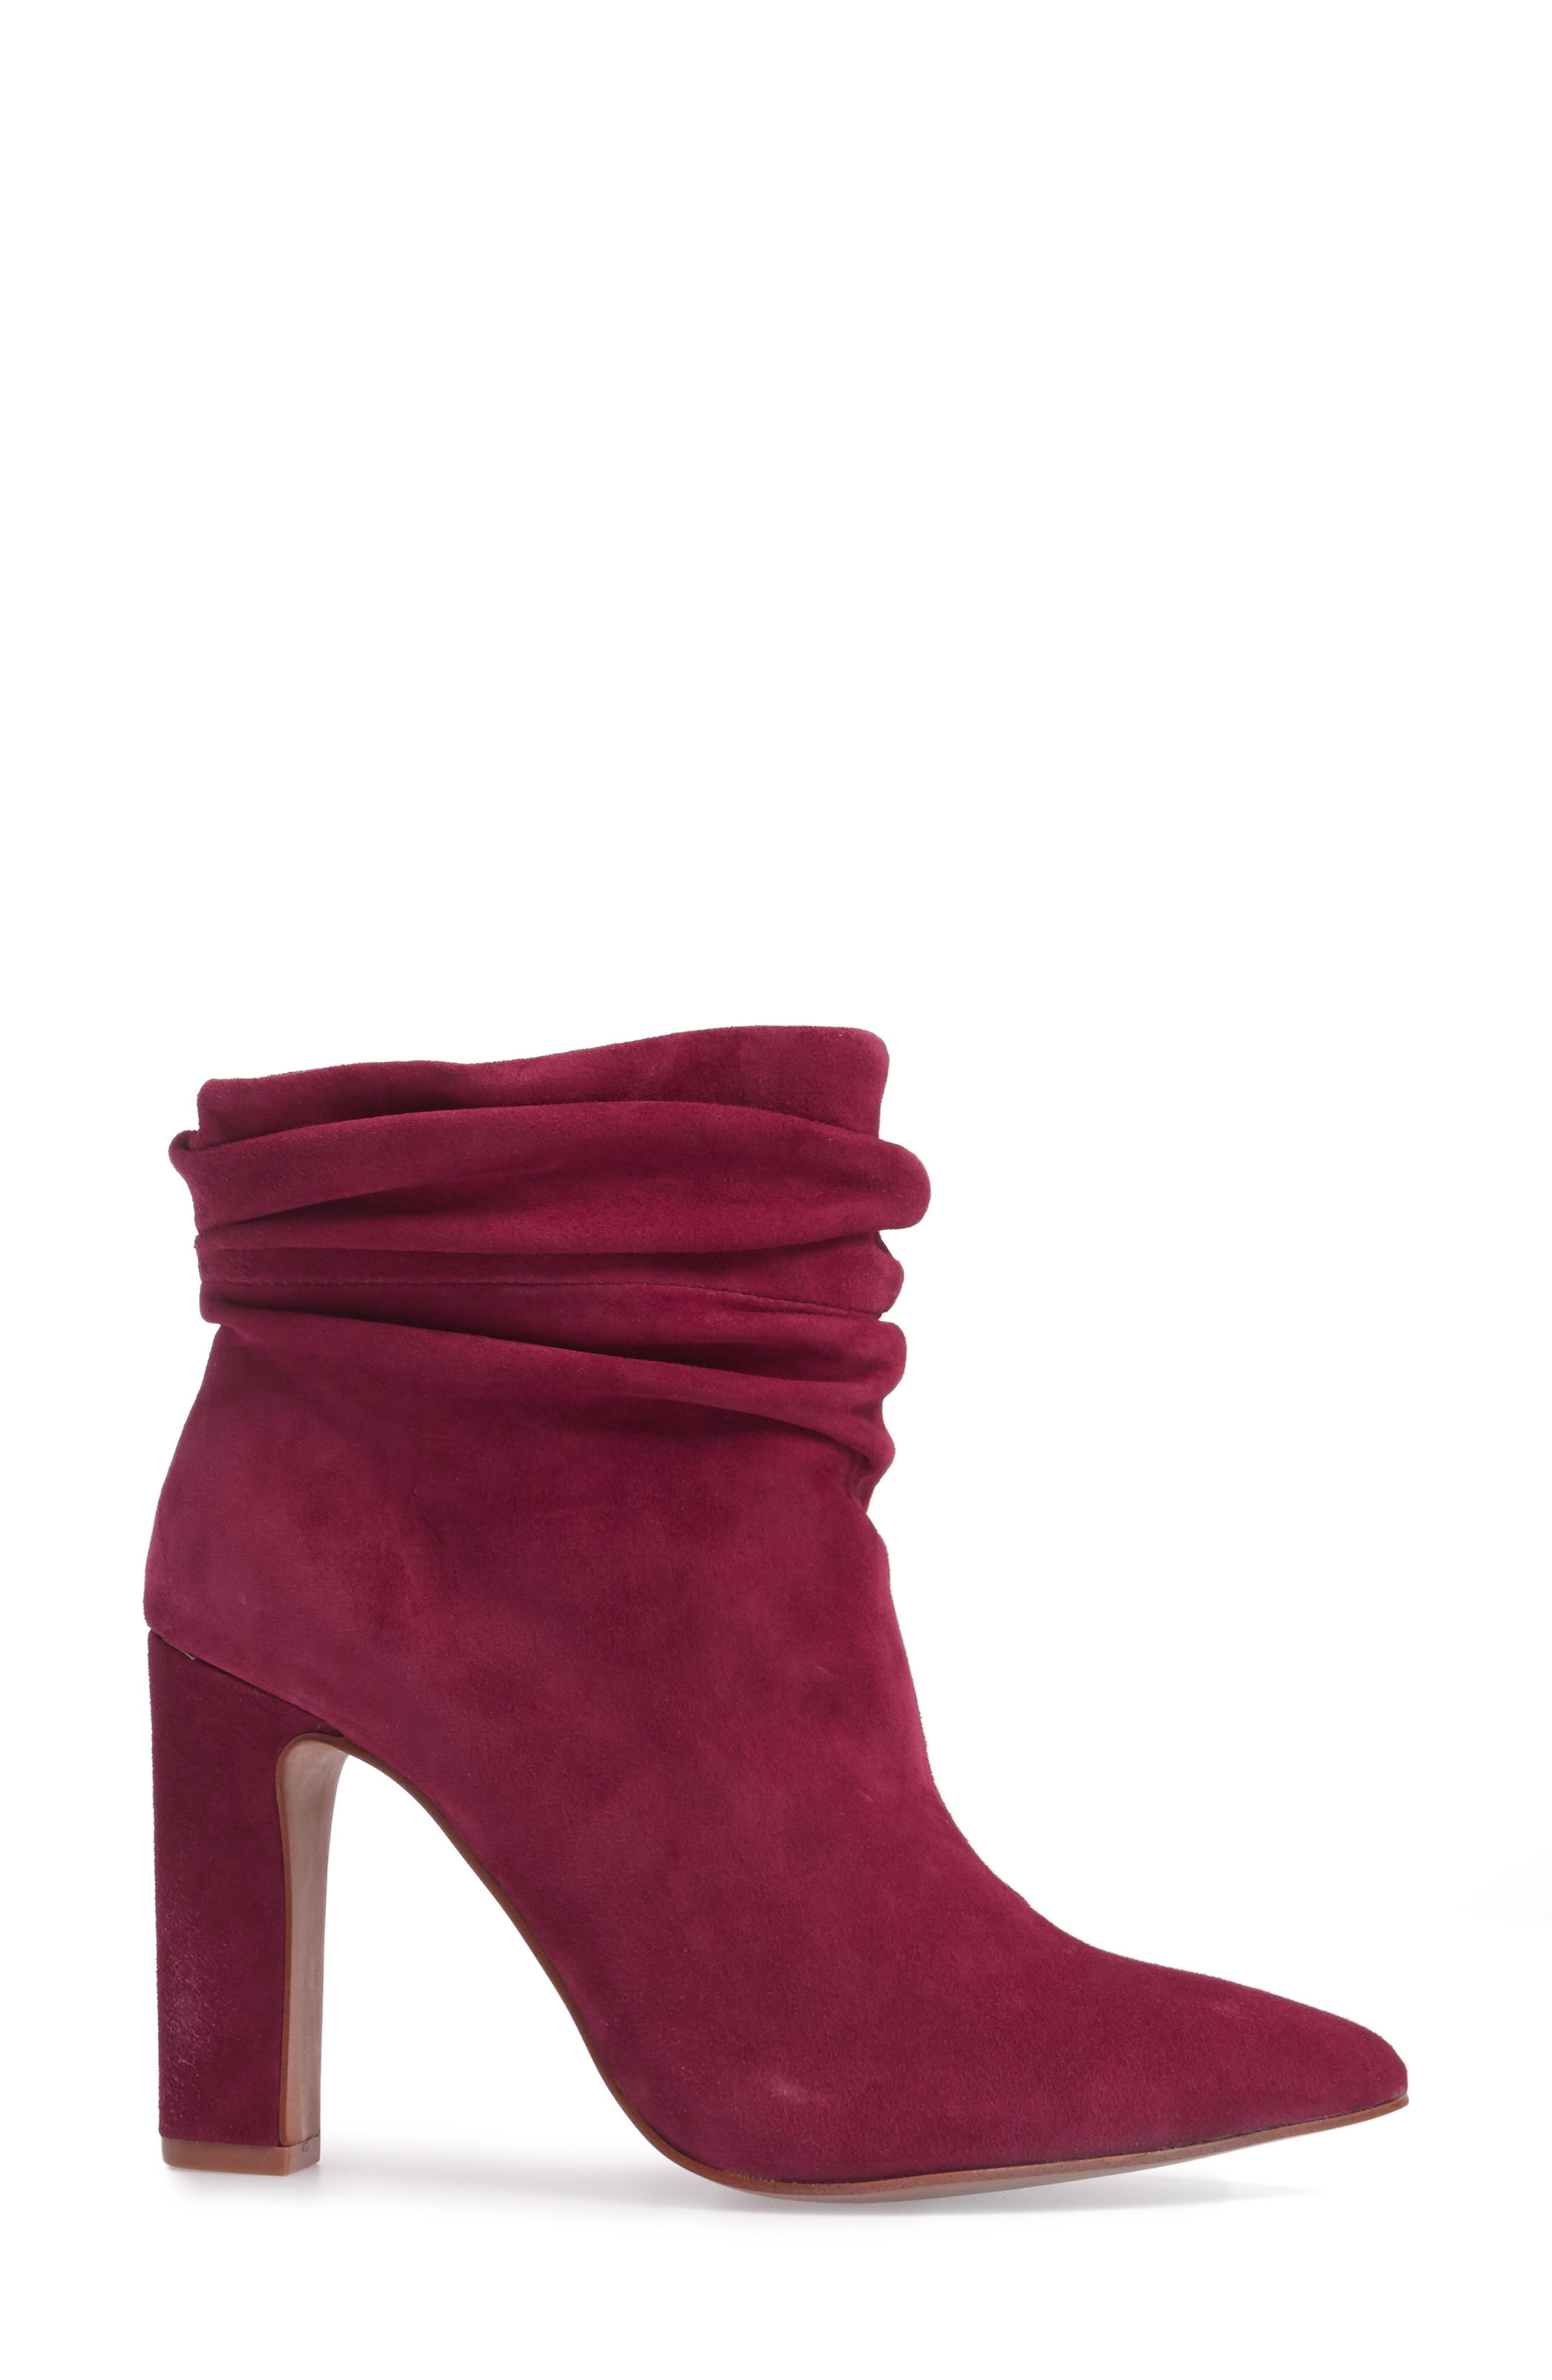 Kane Bootie,                             Alternate thumbnail 3, color,                             RED SUEDE